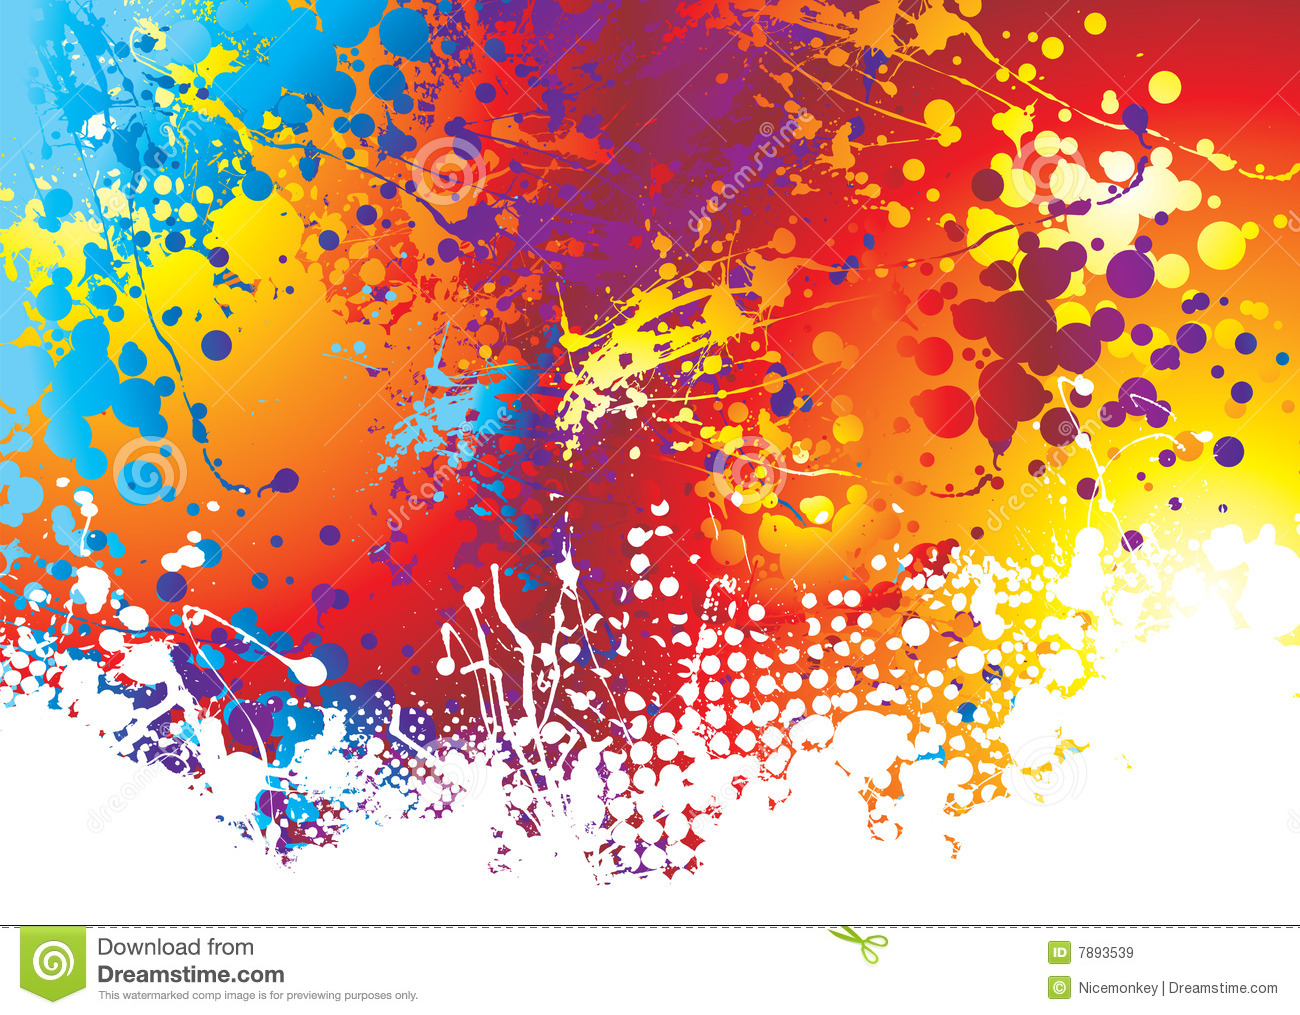 Watercolor splatter vector abstract watercolor background - Ink Splat Rainbow Bottom Royalty Free Stock Images Image